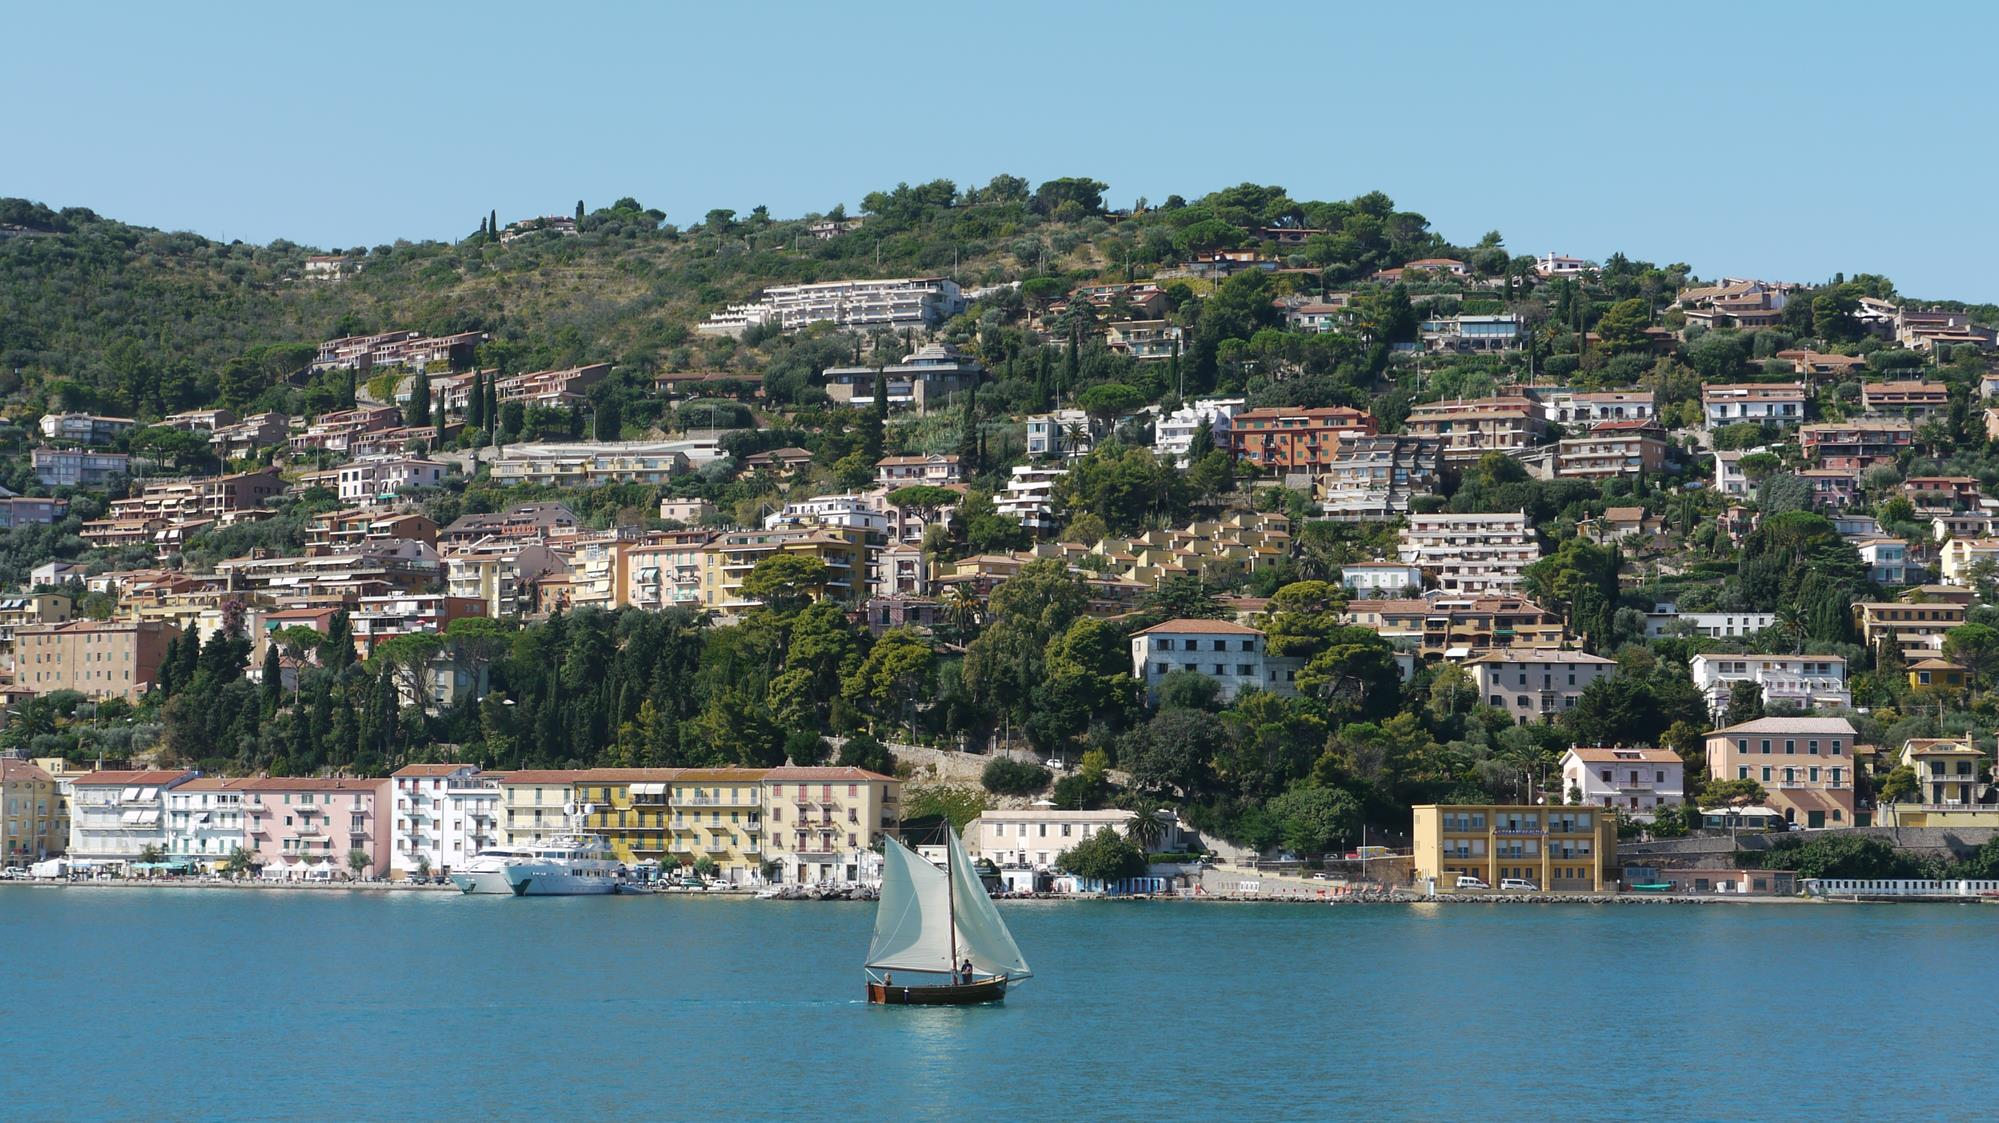 Porto Santo Stefano, from the ferry on our way to the island of Giglio